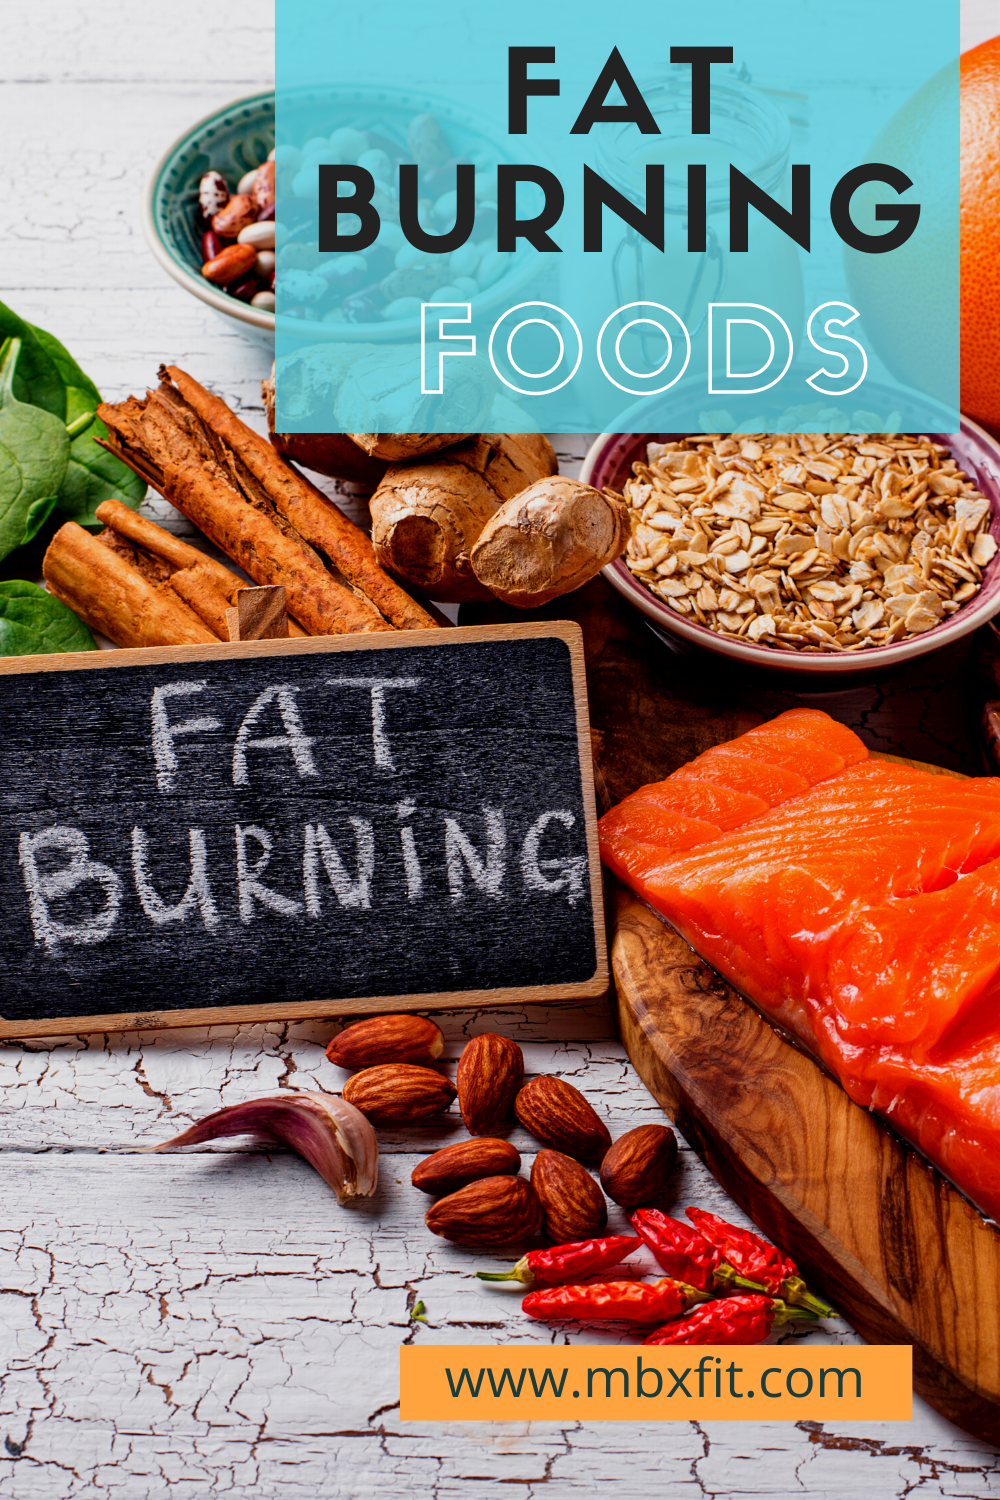 Top 23 Fat Burning Foods for Amazing Weight Loss - YouTube